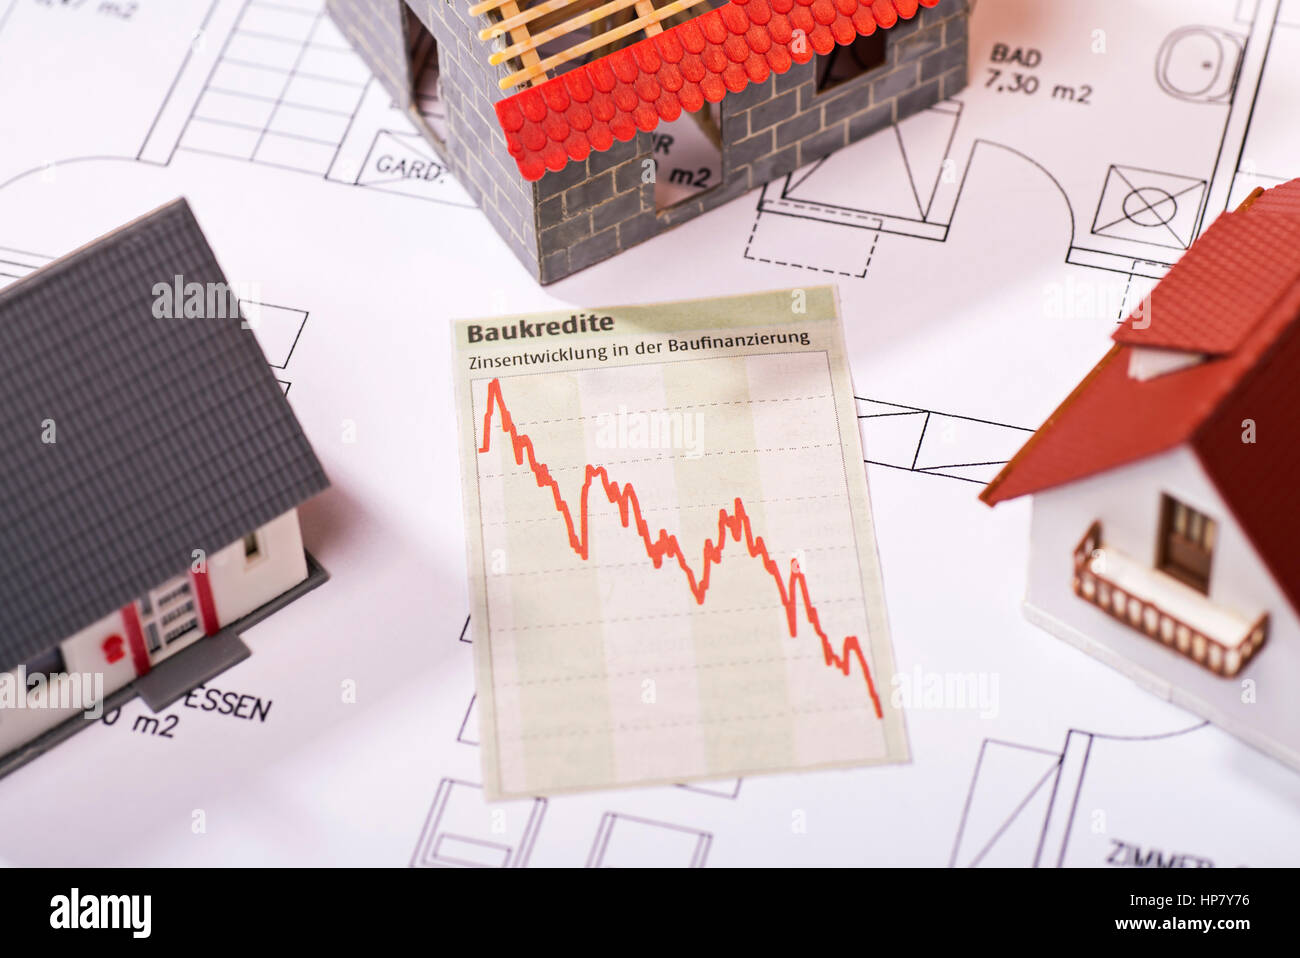 Chart shows falling interest rates for housing loans. - Stock Image